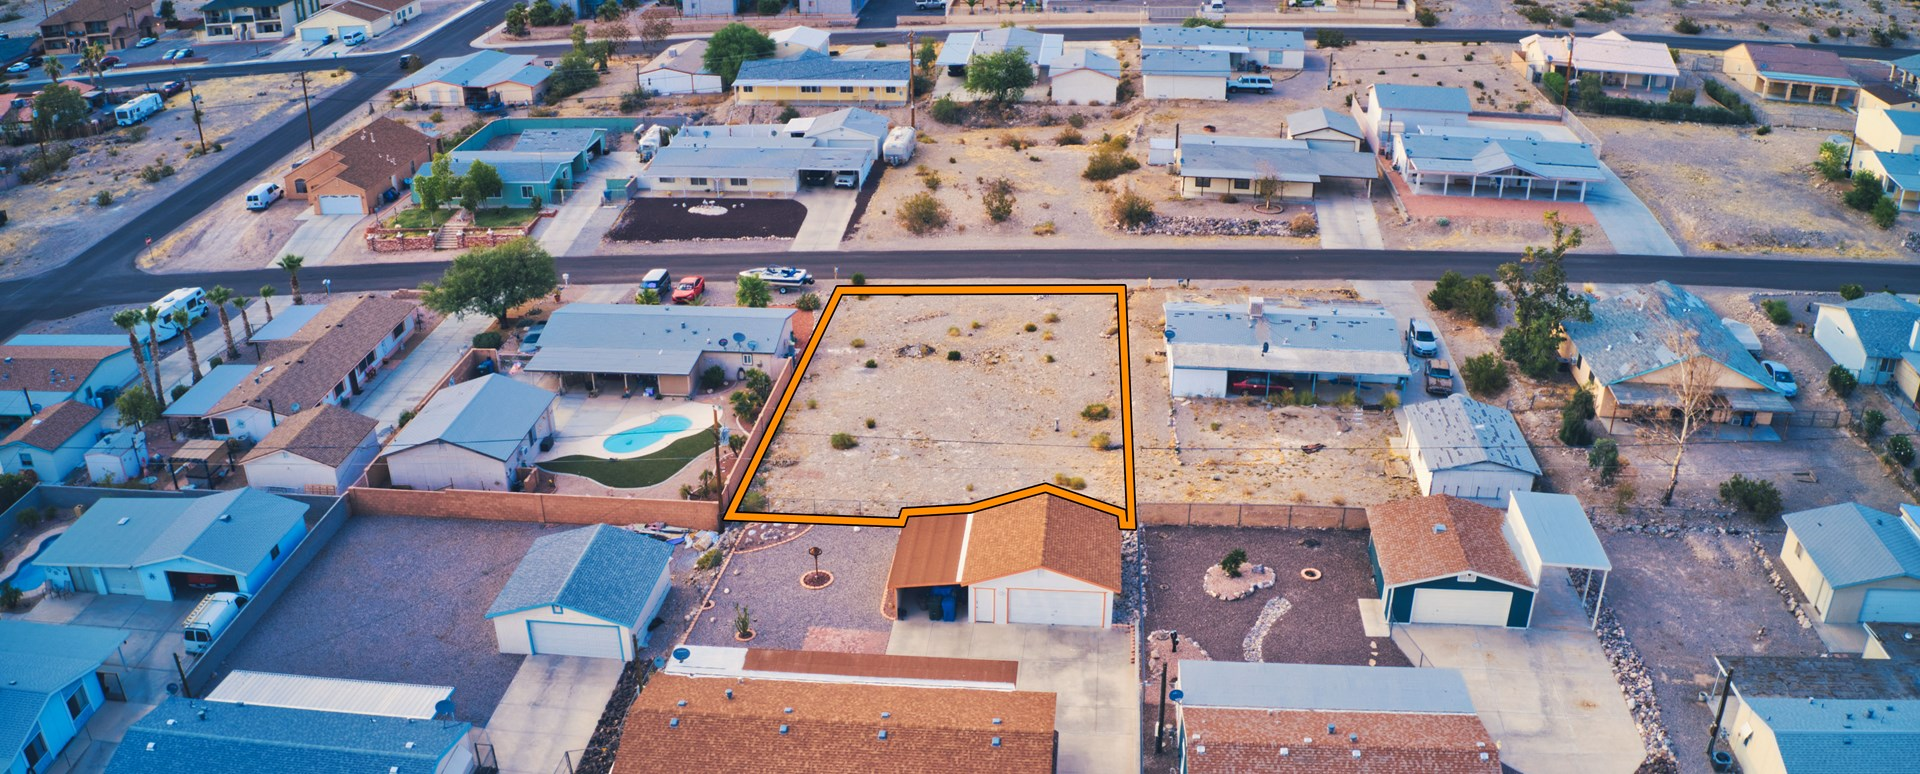 ONLINE AUCTION - 0.22 ACRE BUILDING LOT IN BULLHEAD CITY, AZ